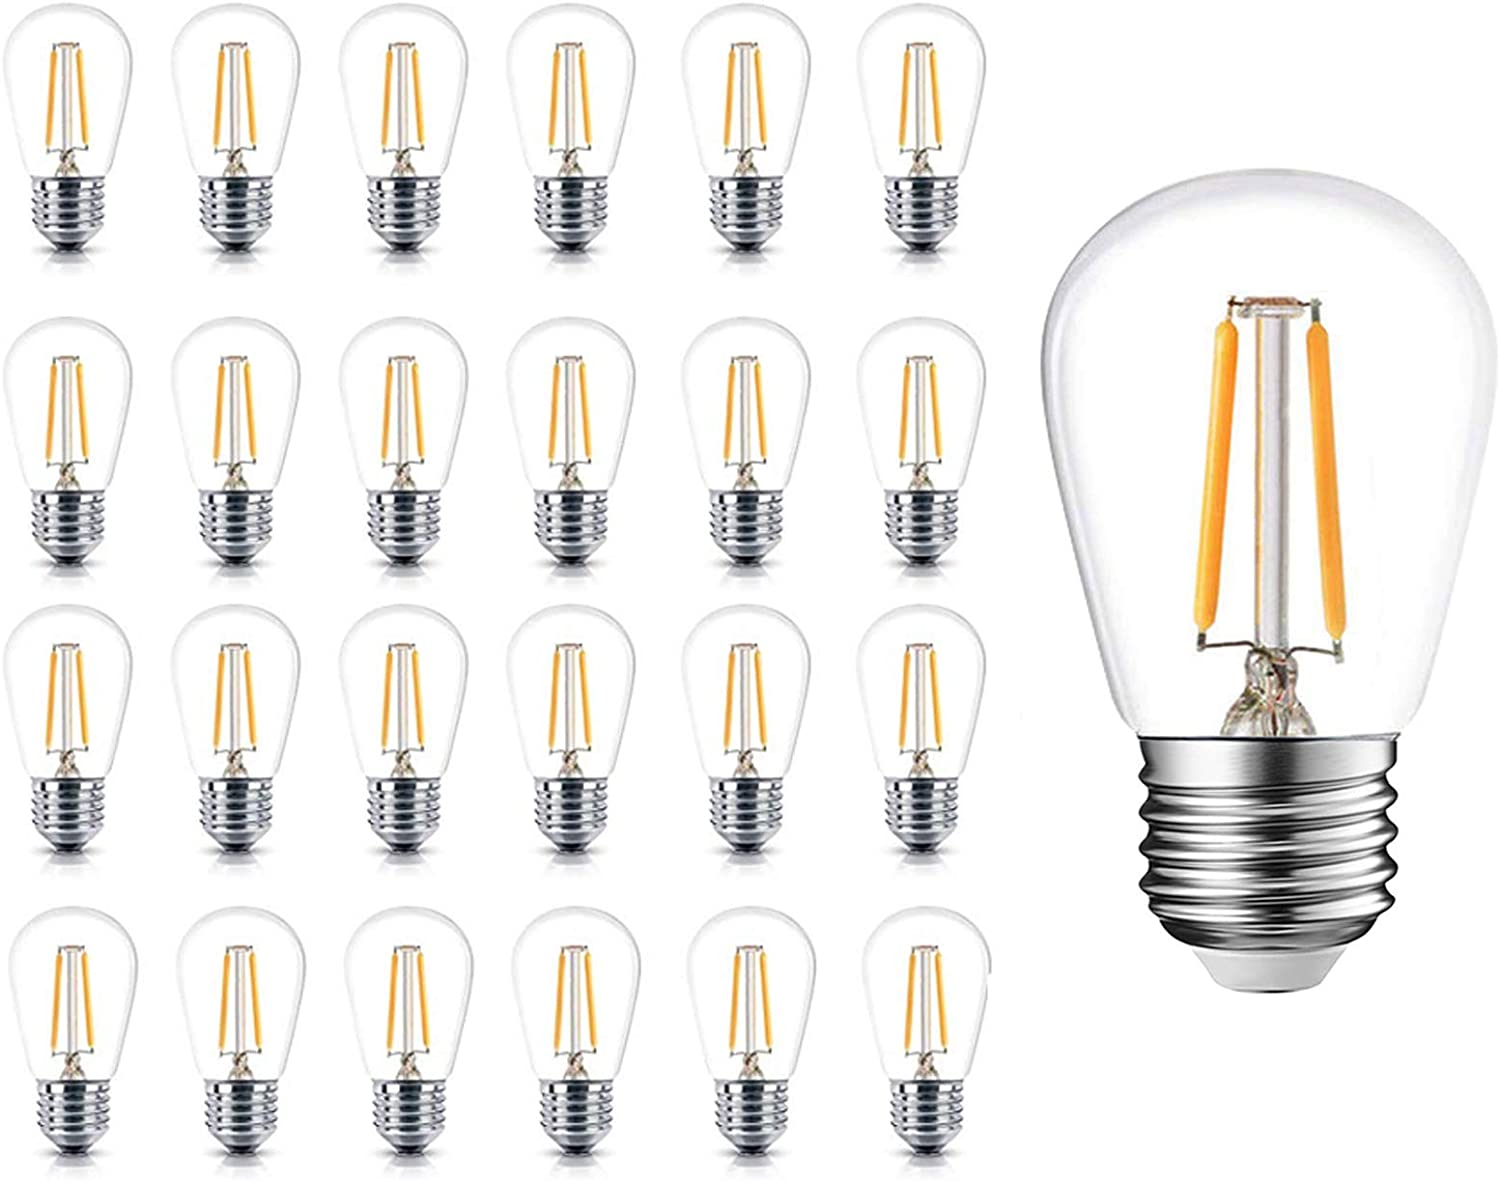 Newpow S14 Led Light Bulbs Glass Pack Dimmable Super-cheap Edison Super Special SALE held 24